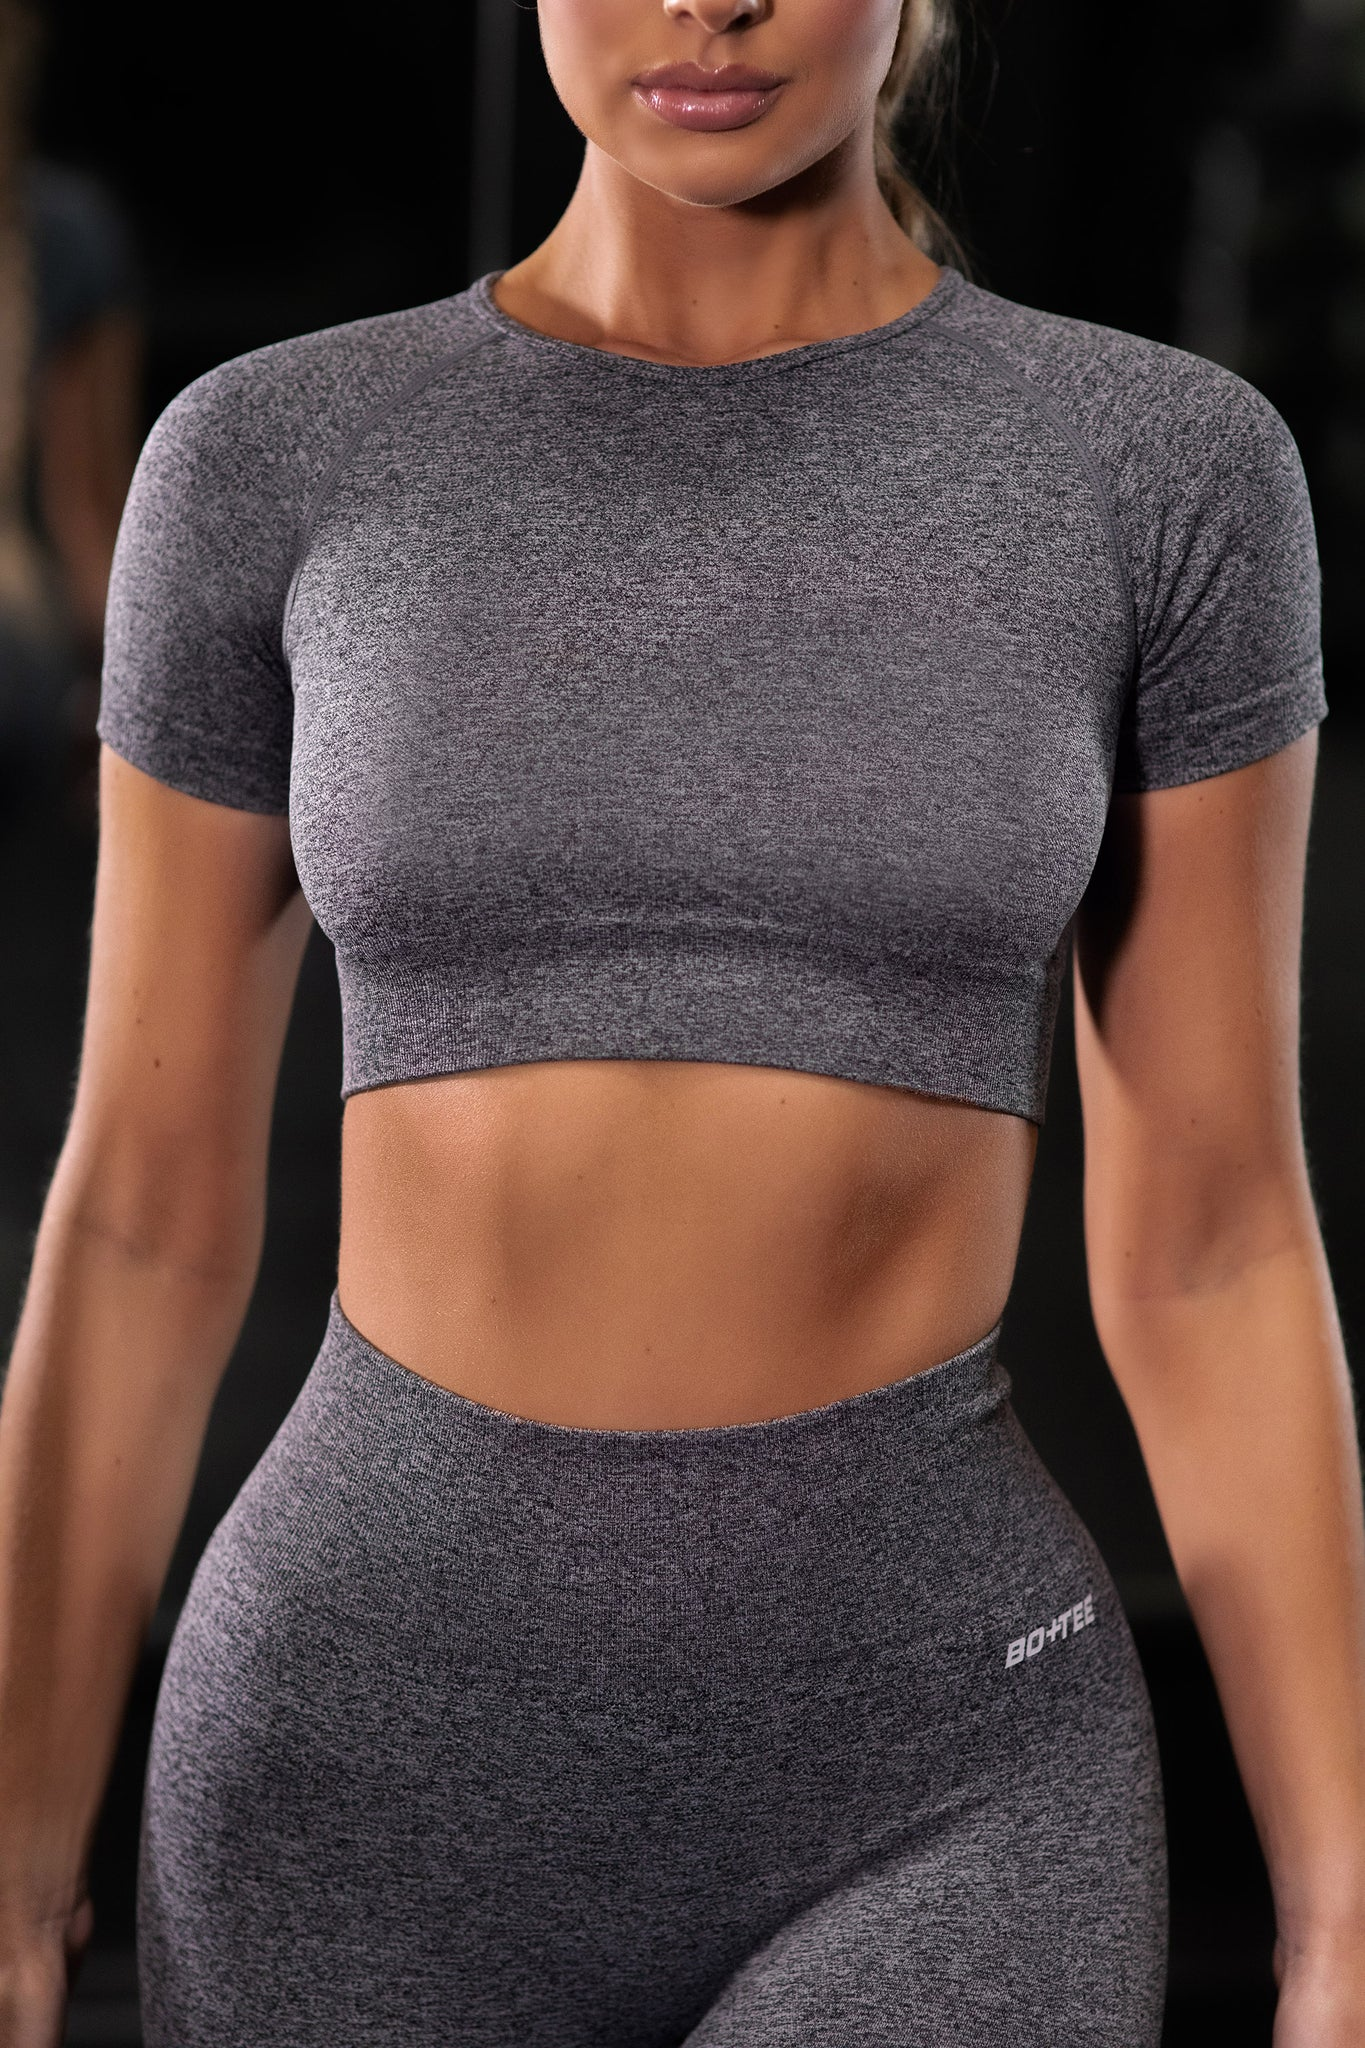 Plain black marl seamless short sleeve crop top with ribbed underband and round neck. Image 1 of 6.